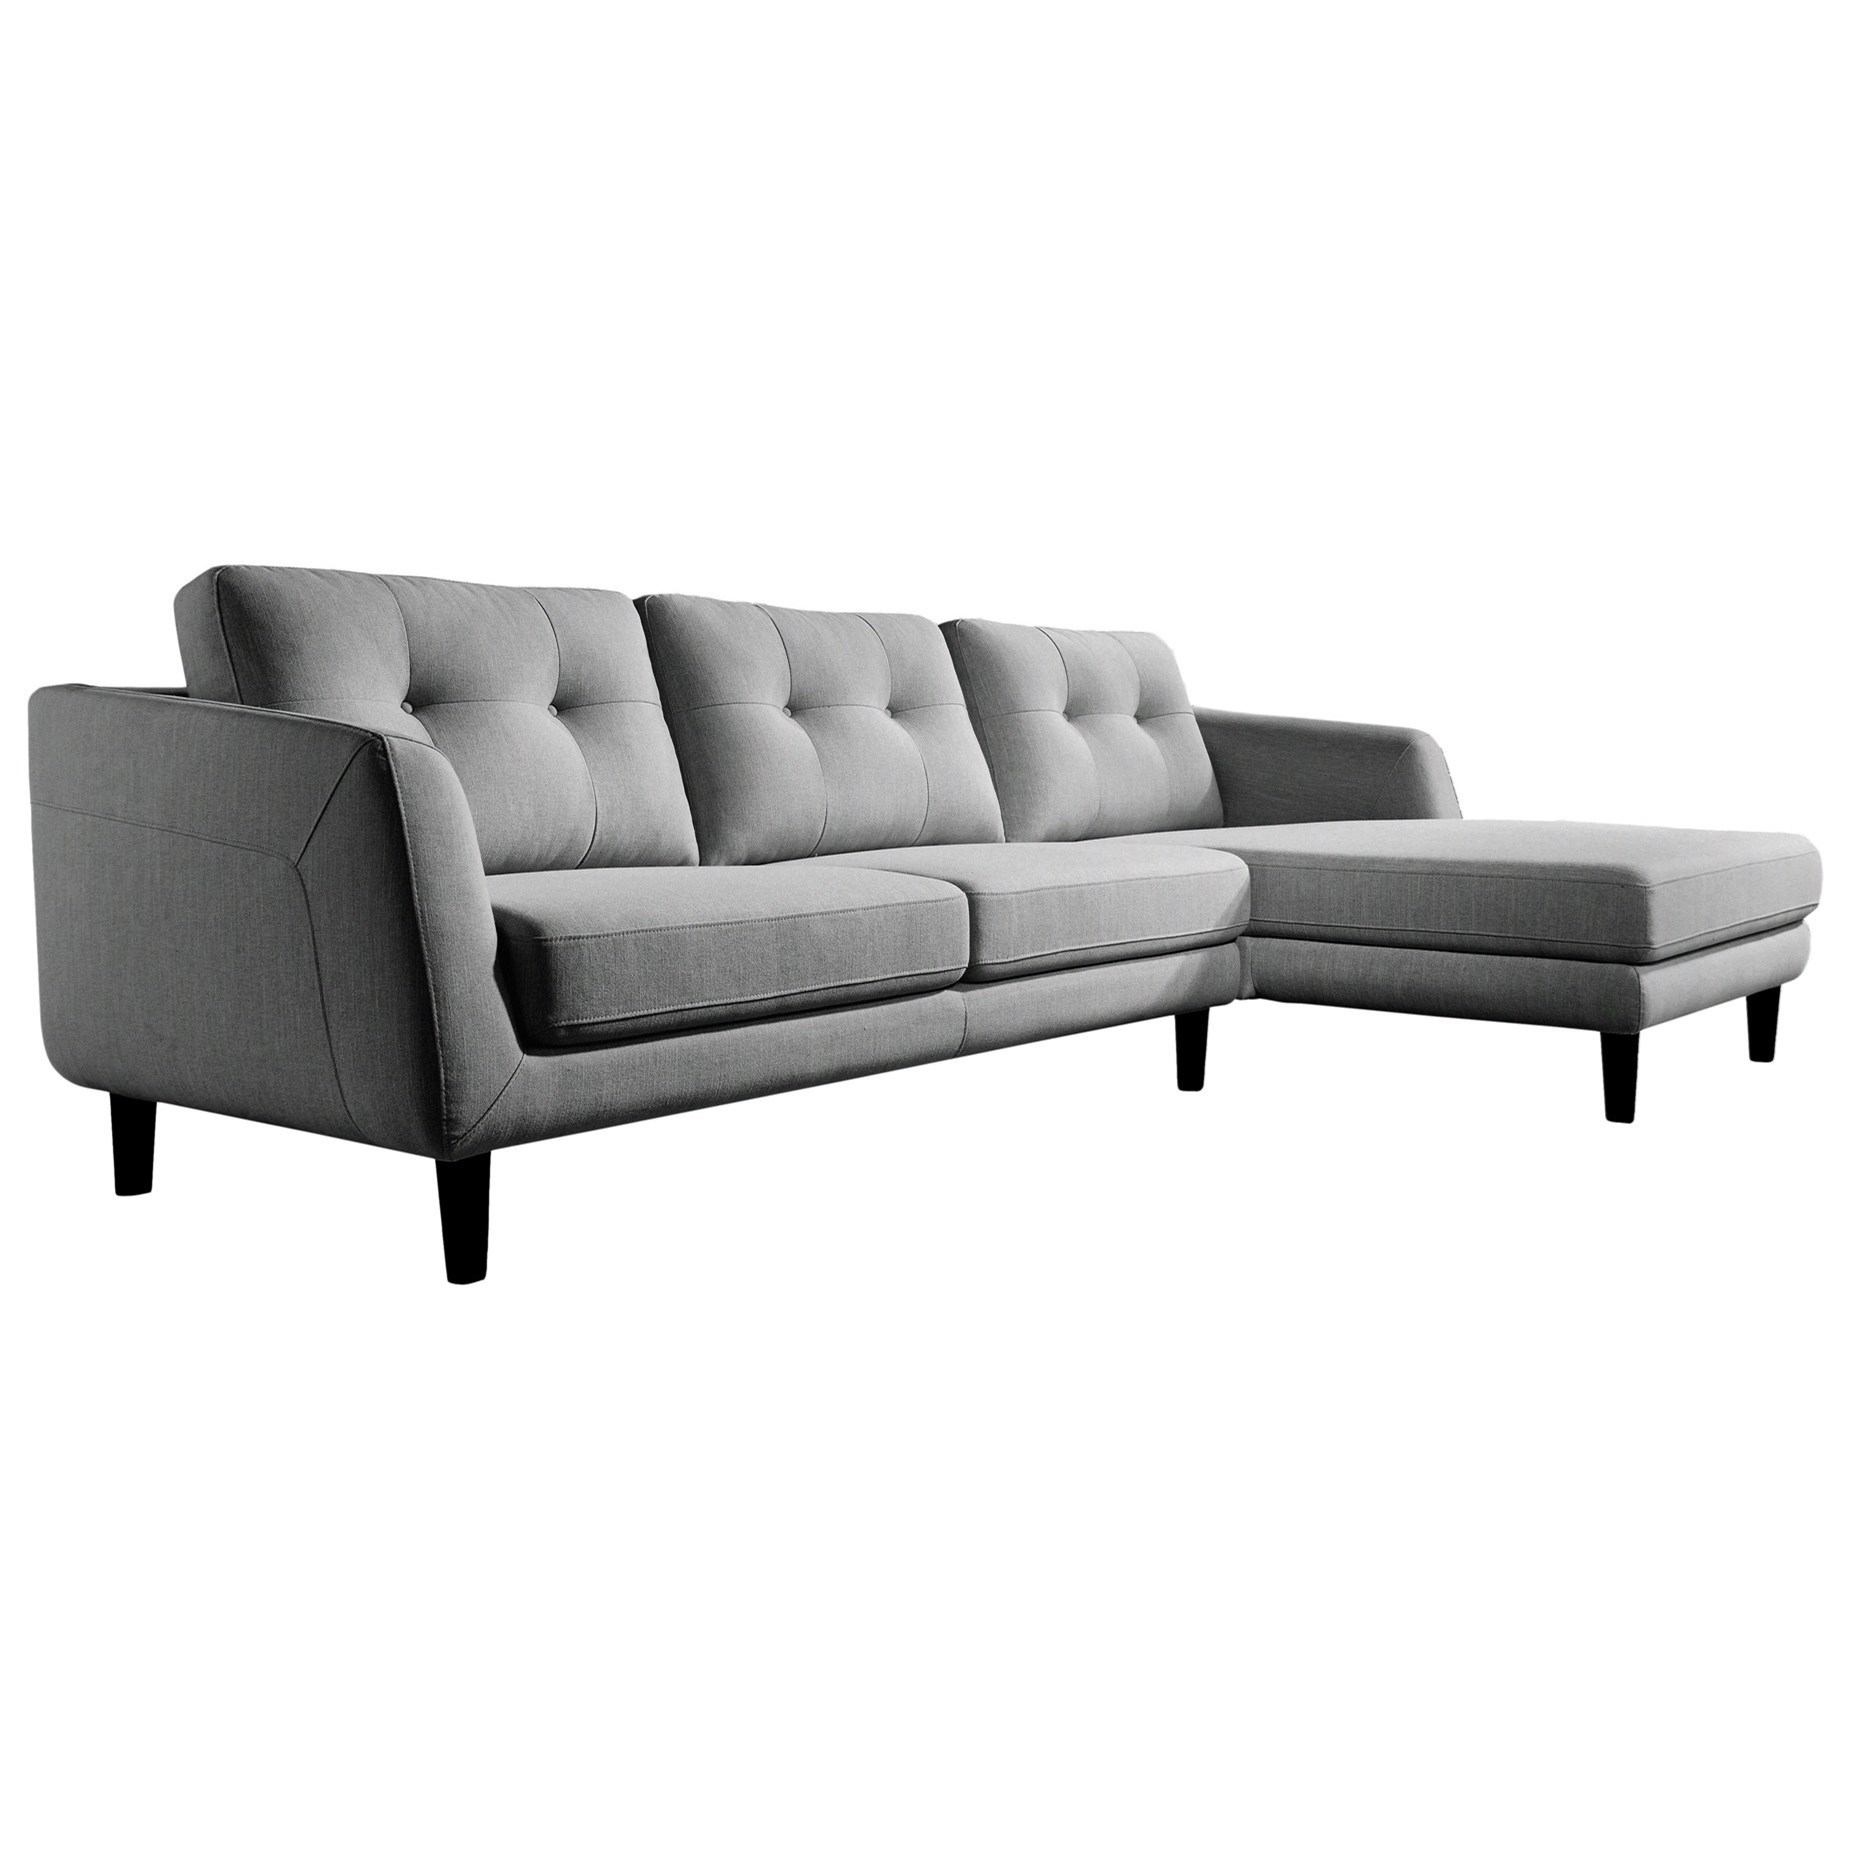 Corey Sectional Sofa with Right Chaise by Moe's Home Collection at Stoney Creek Furniture